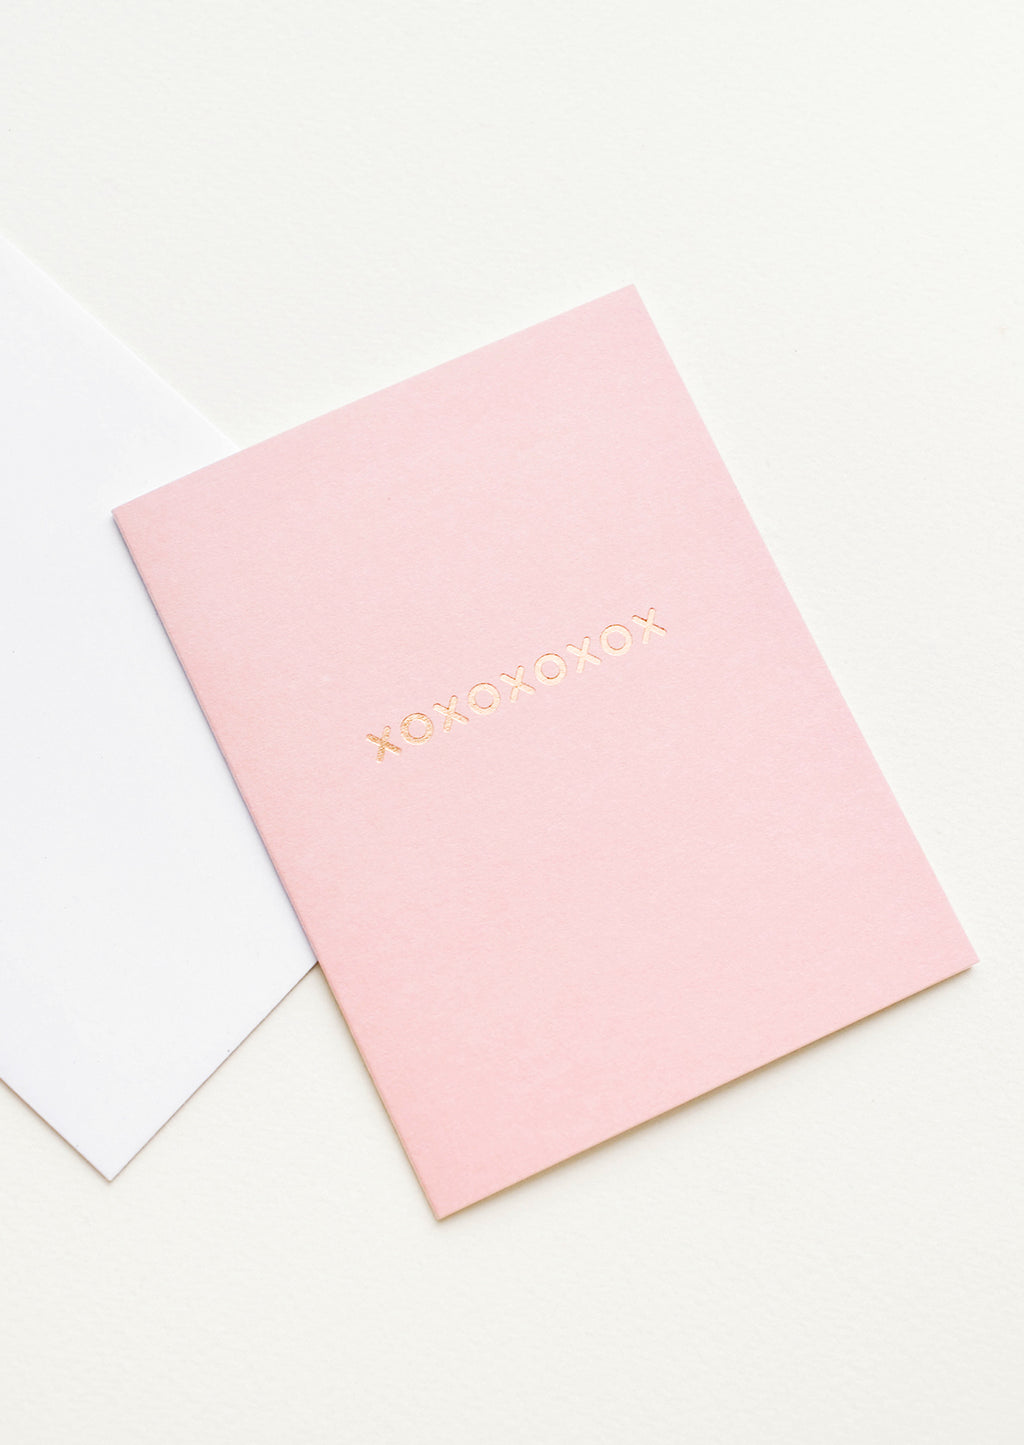 "2: A white envelope and pale pink greeting card with ""xoxoxoxoxox"" in gold foil."